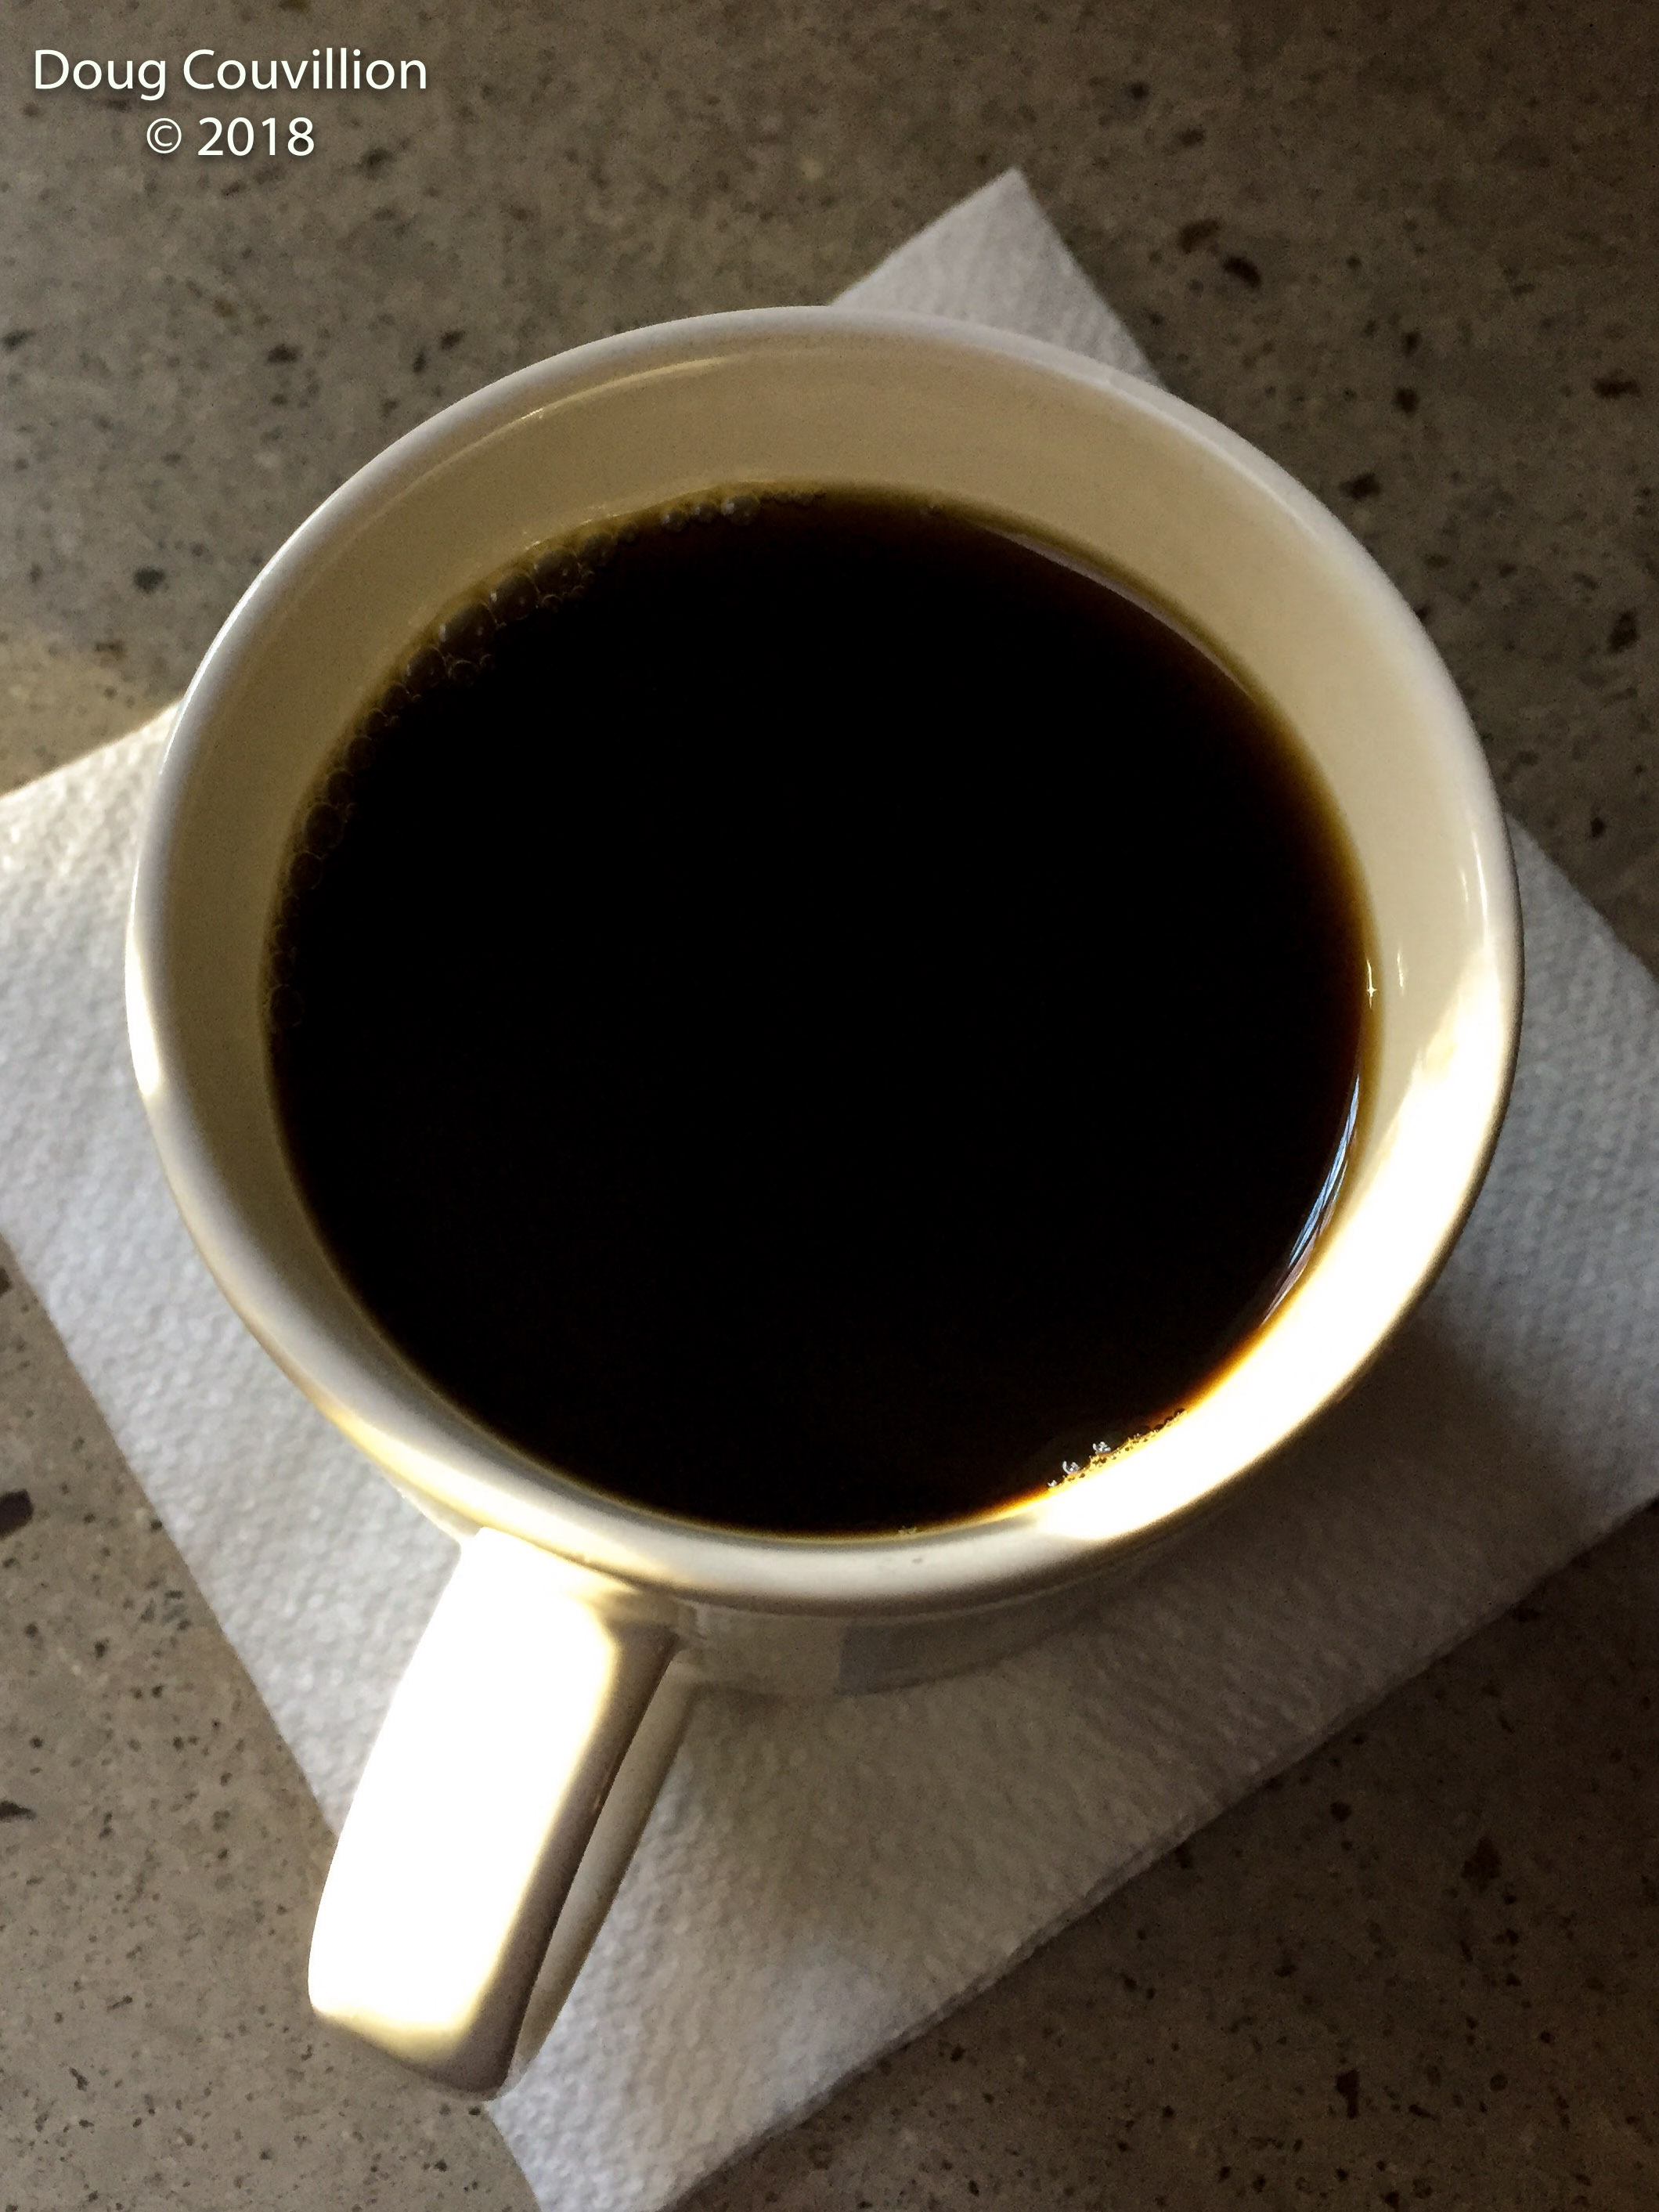 photograph of a mug of black coffee by Doug Couvillion